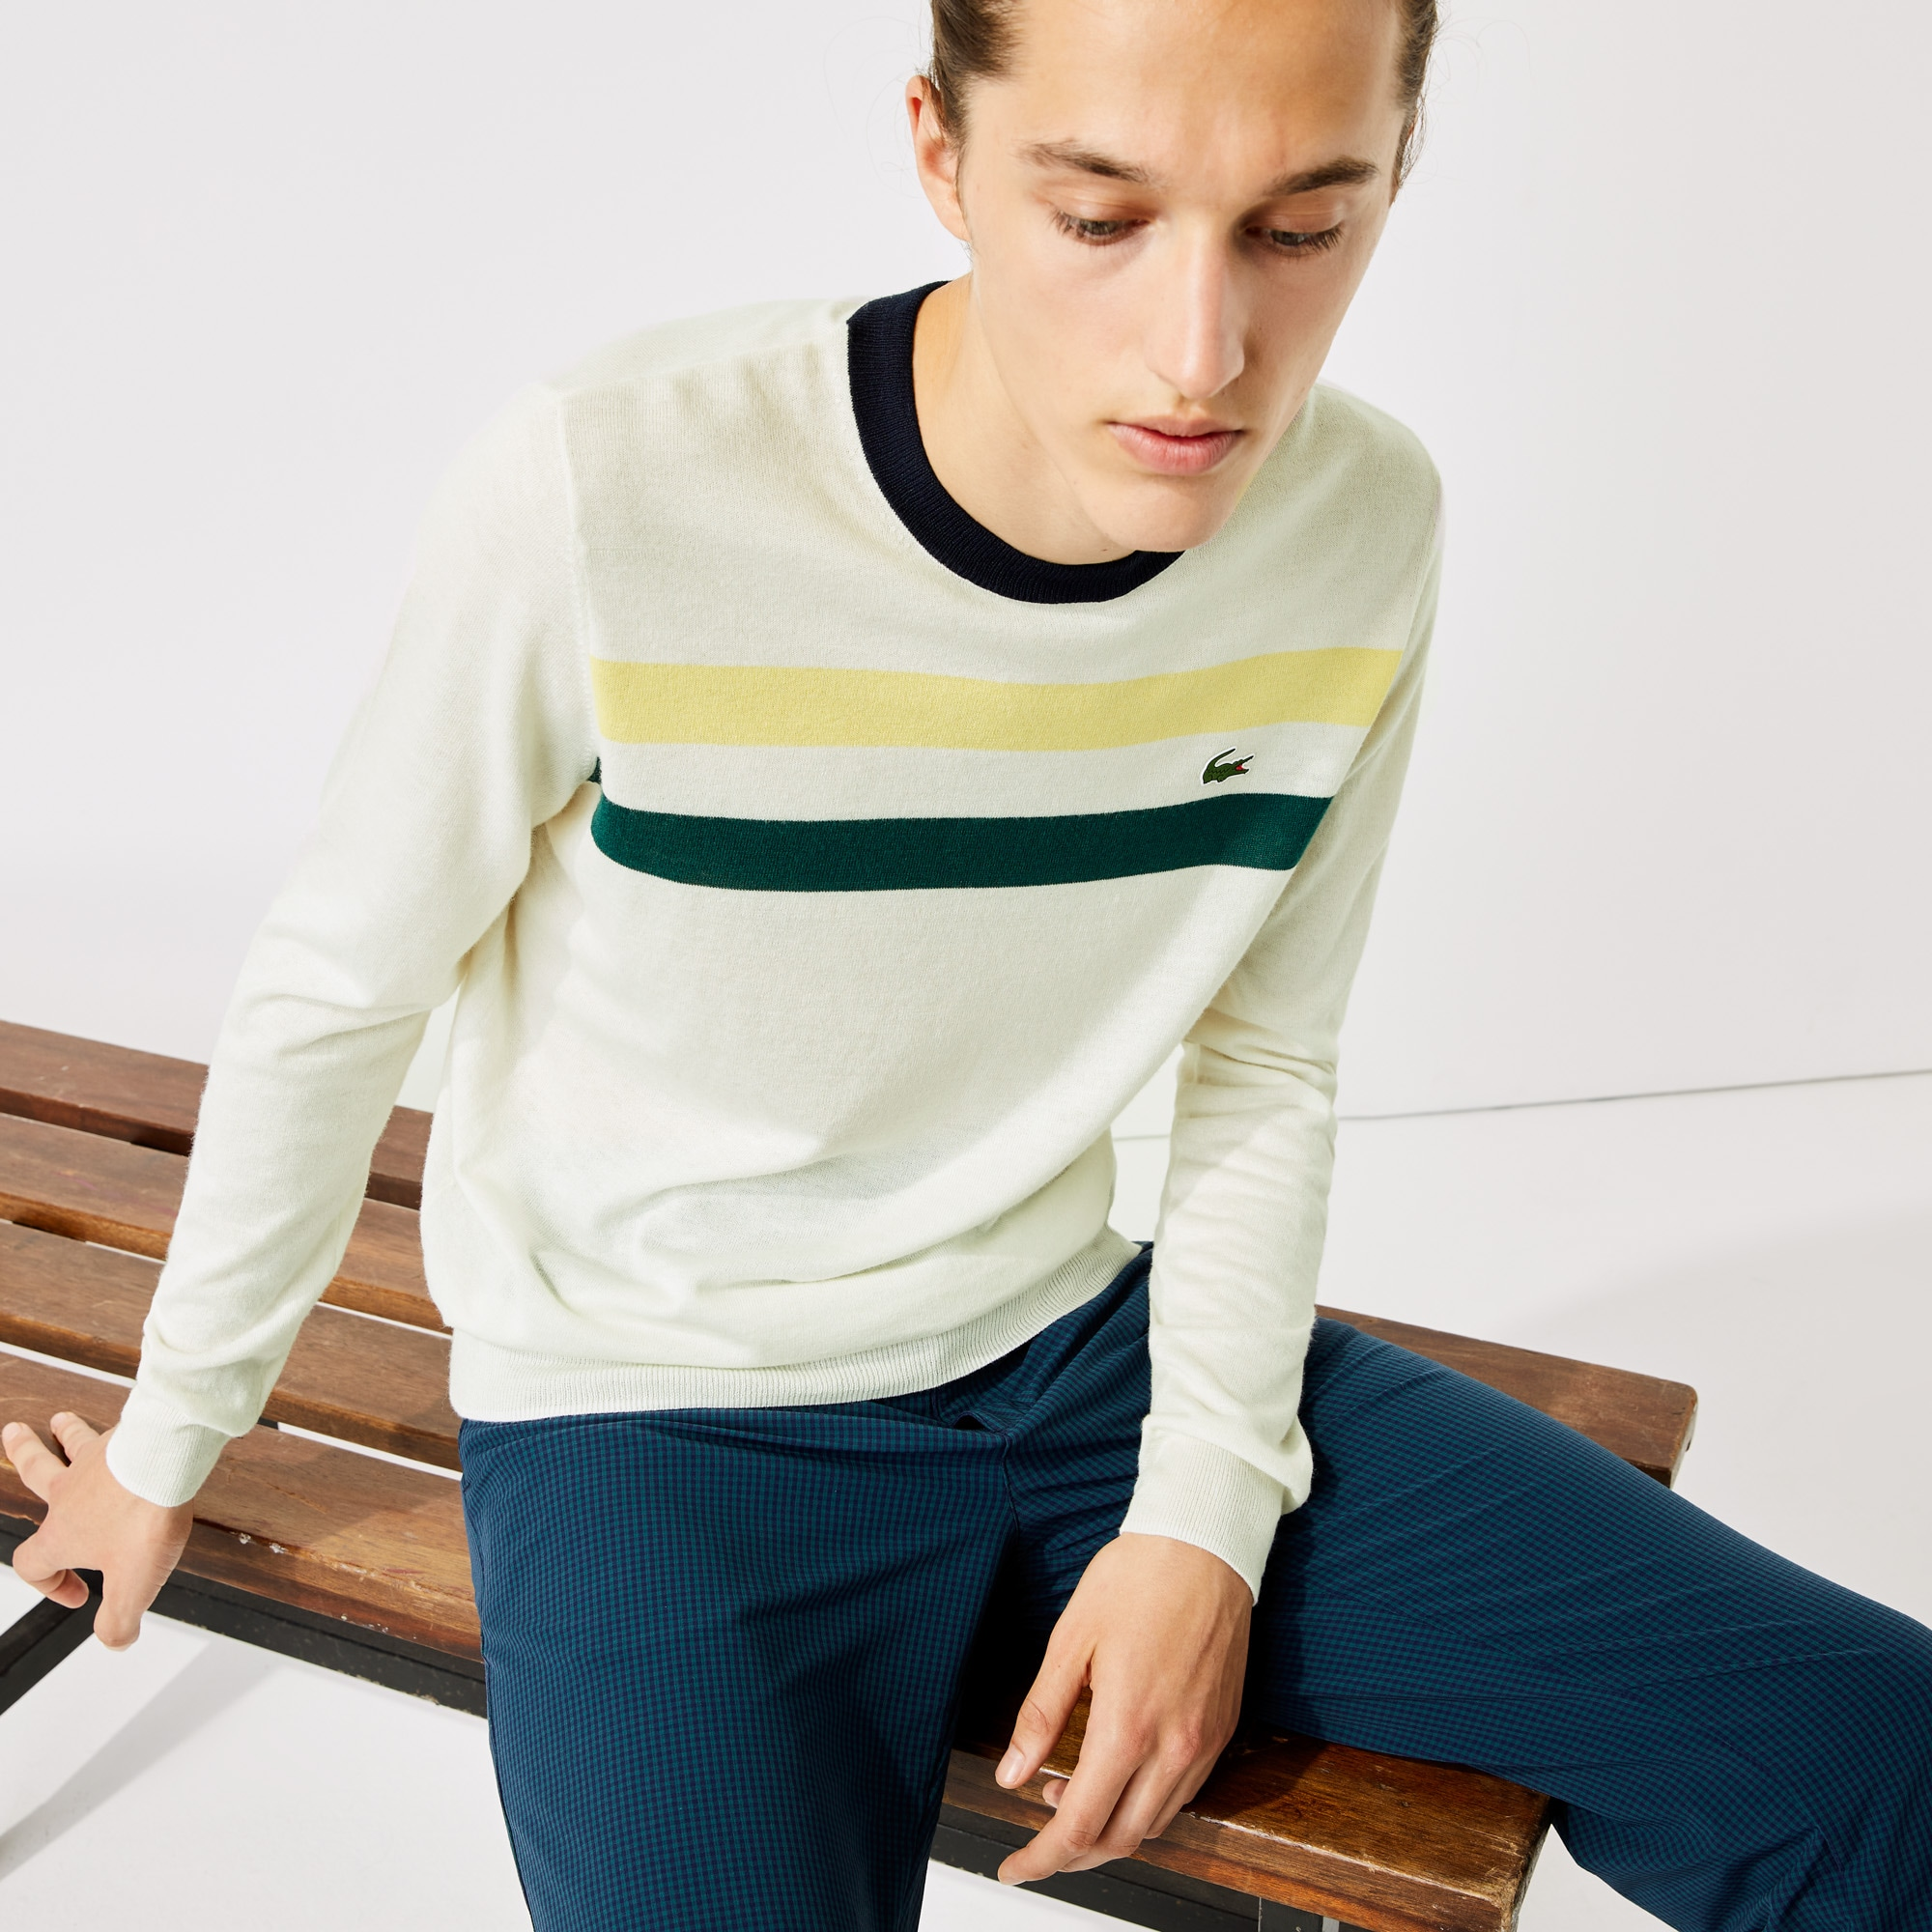 라코스테 스포츠 골프 스웨터 Mens Lacoste SPORT Breathable Striped Wool Golf Sweater,White / Yellow / Green / Navy Blue • GEN